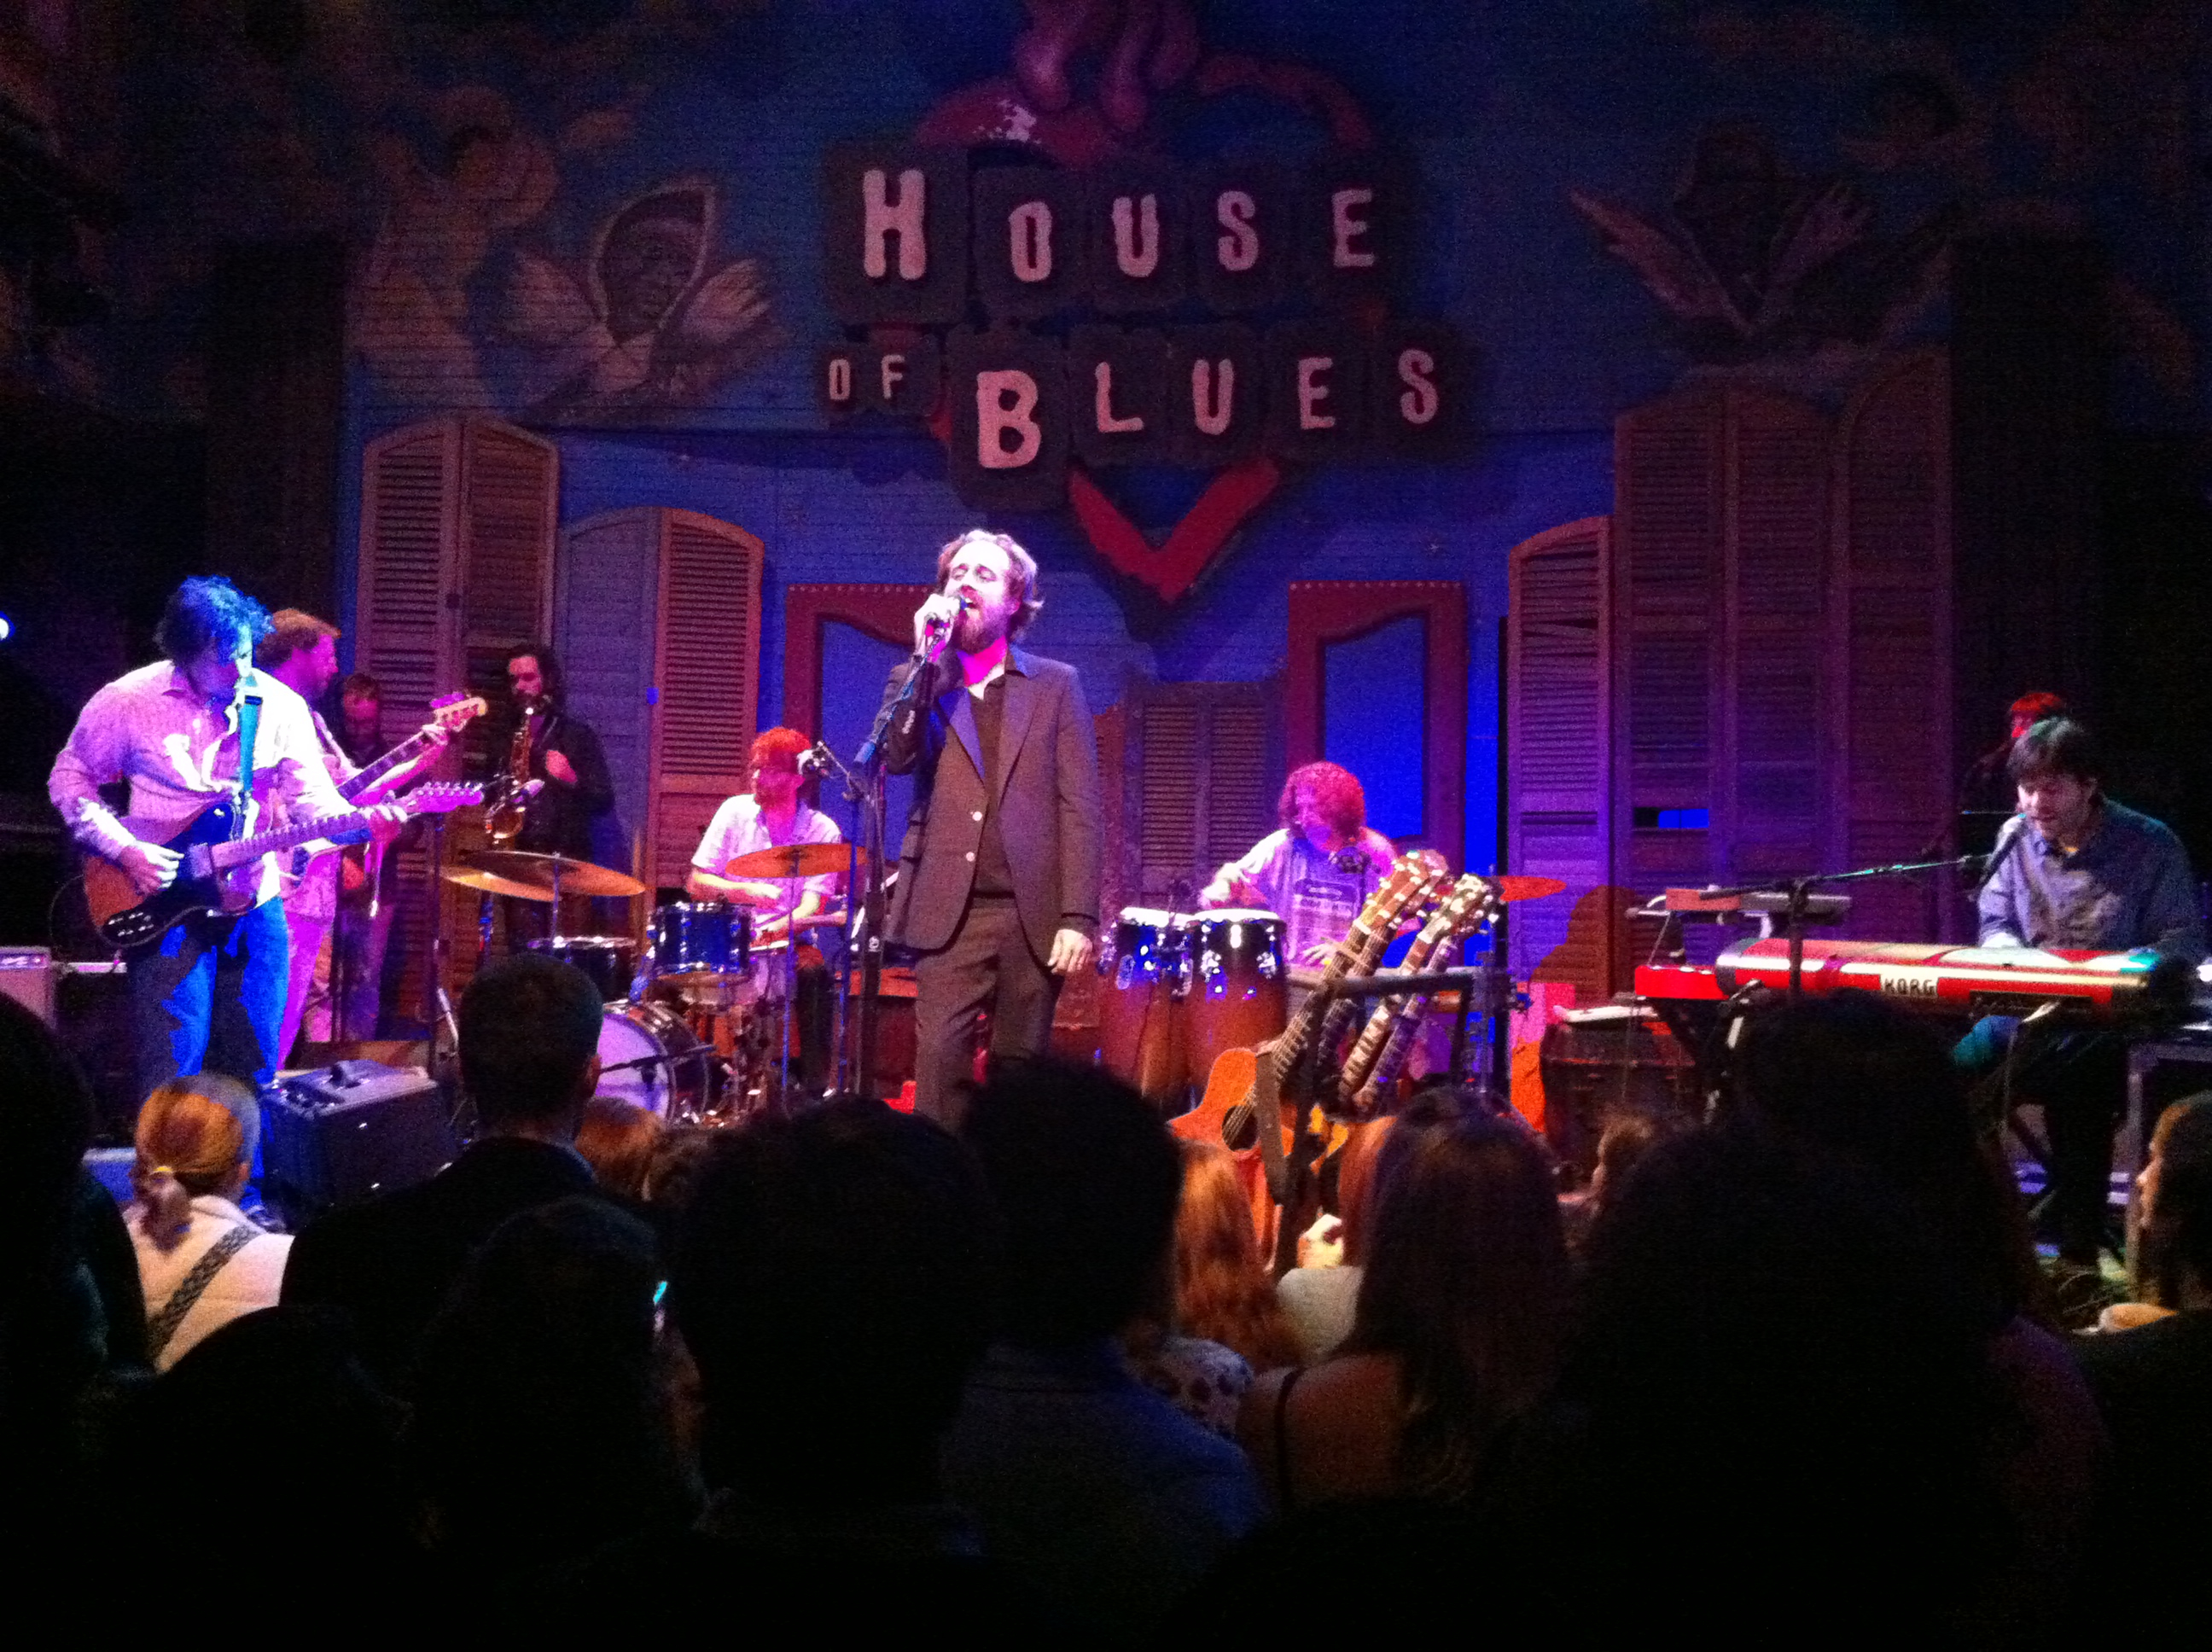 file:house of blues nola iron and wine - wikimedia commons